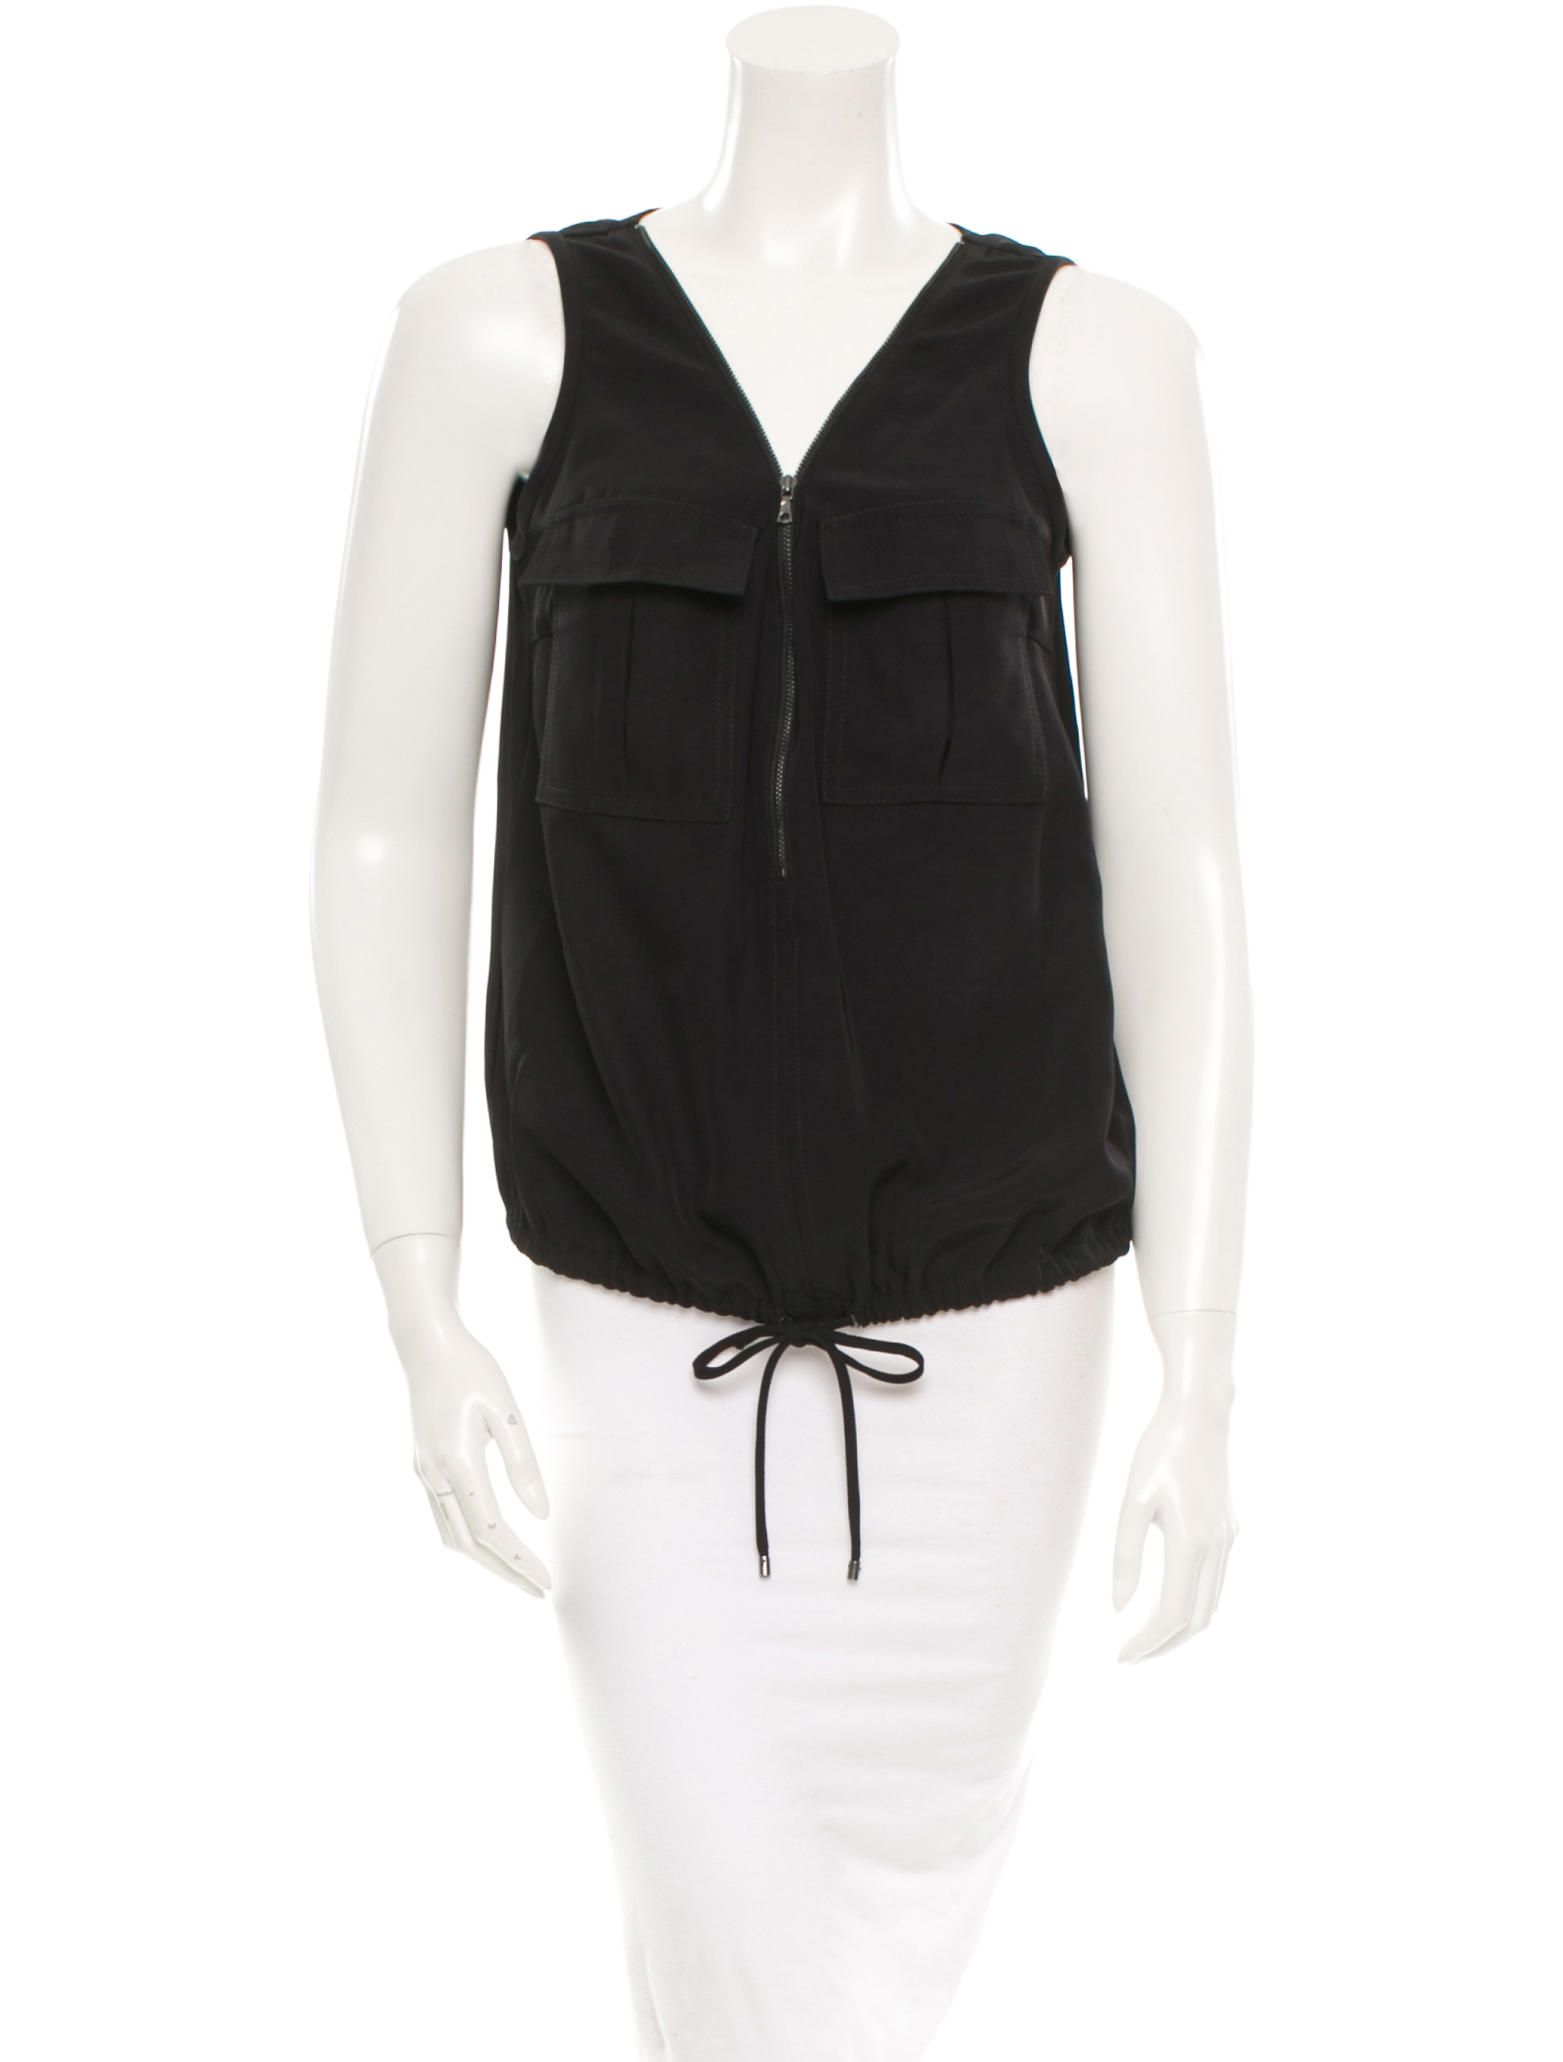 Black Trina Turk sleeveless top with two pockets at bust, thick straps, V-neck featuring exposed zip closure and drawstring closure at waist.